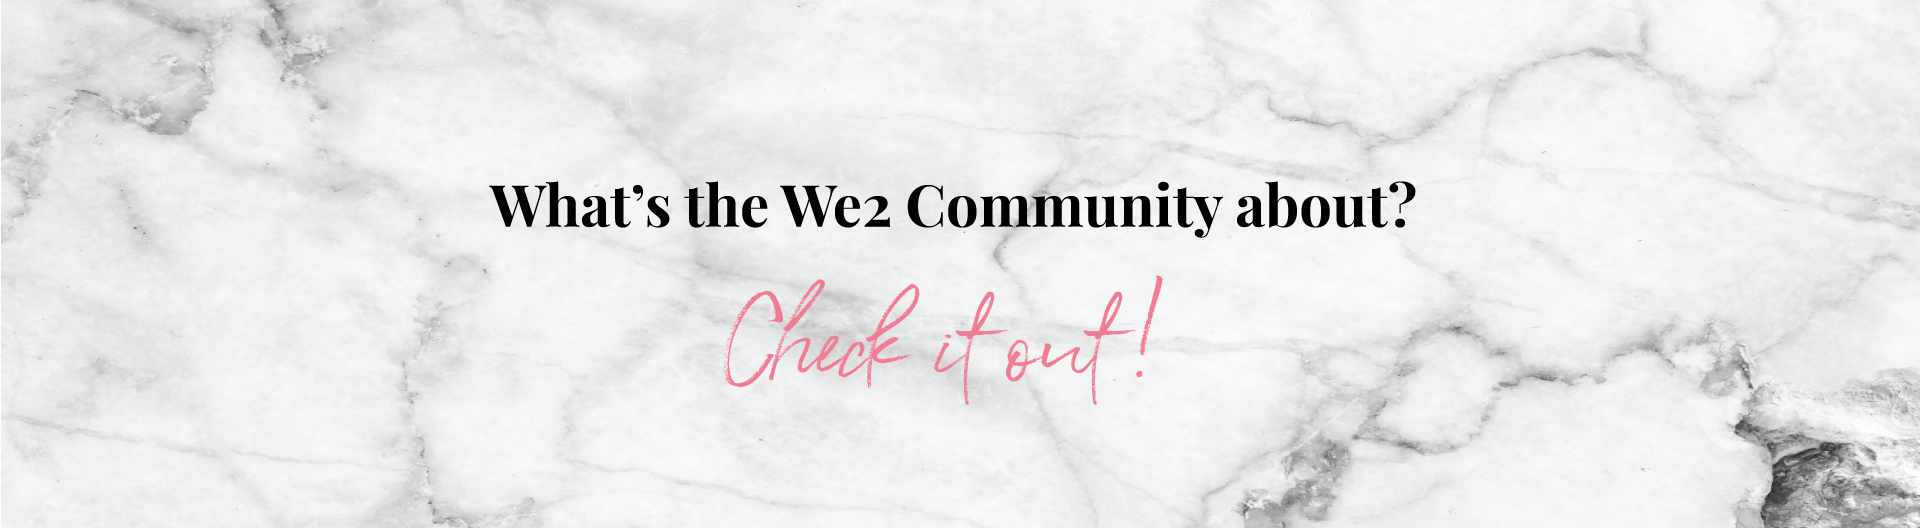 What's the We2 Community about?  Check it out!